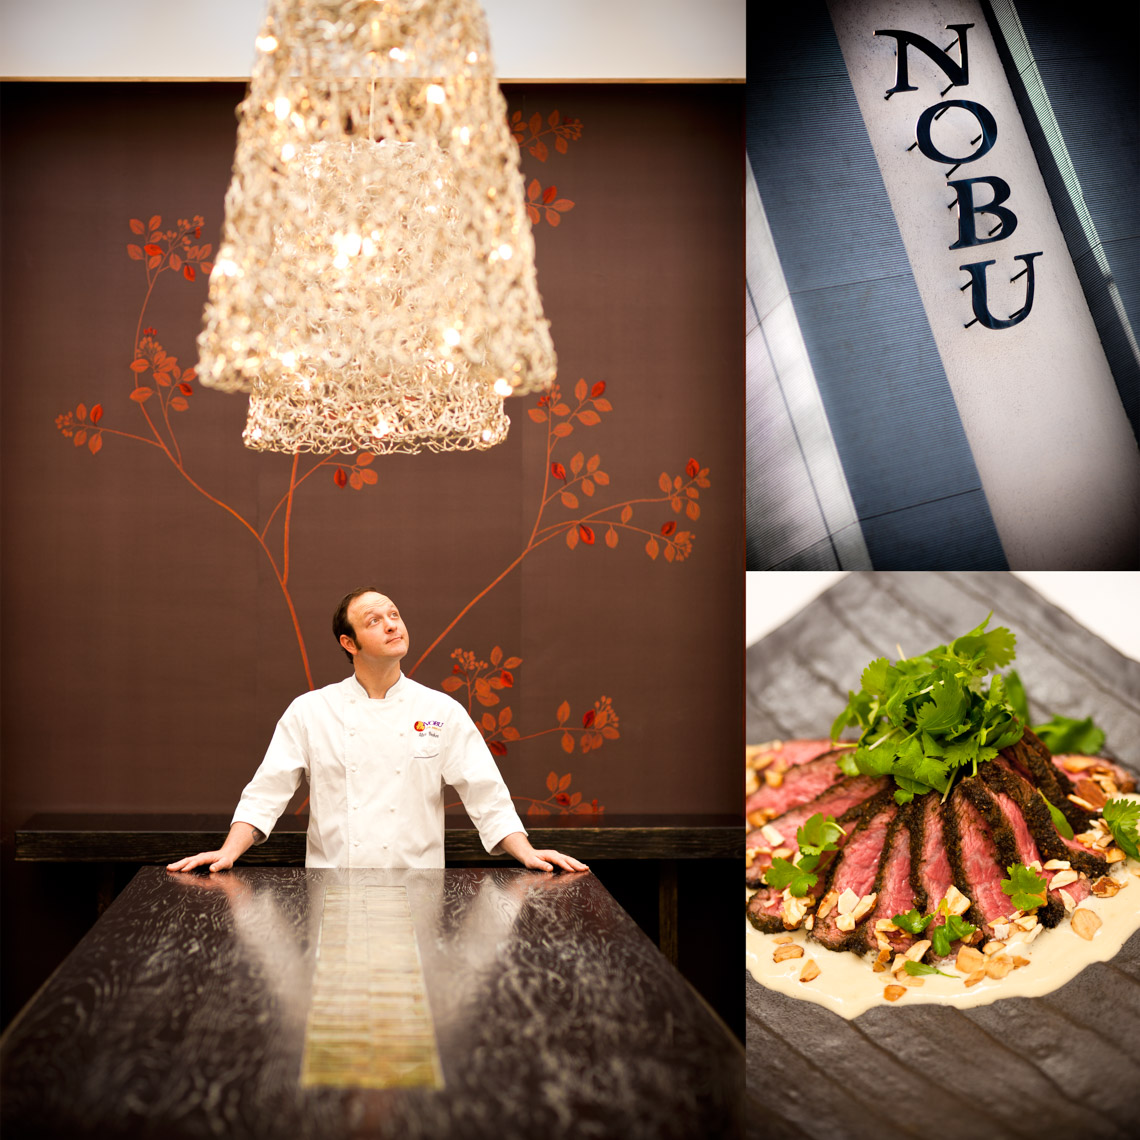 Los Angeles Photographer | Dana Hursey Photography | Top Chef Photography | Chef Alex Becker - Nobu Restaurant